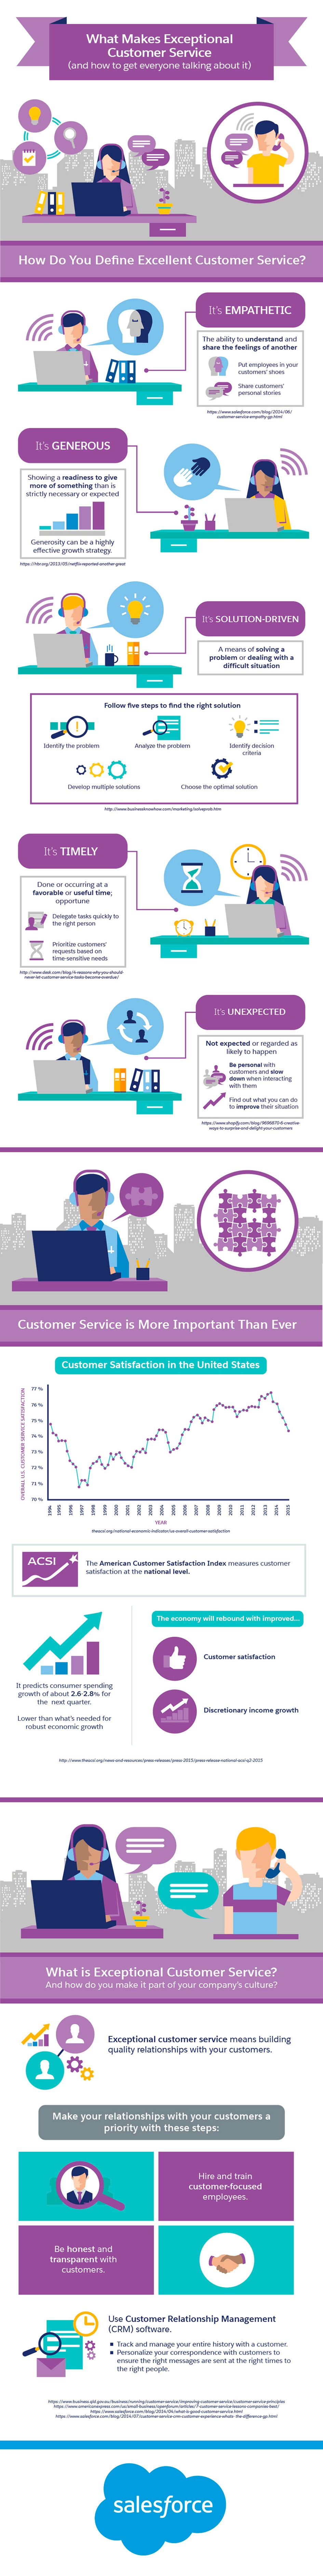 how to convert customers to fans and what makes exceptional customer service